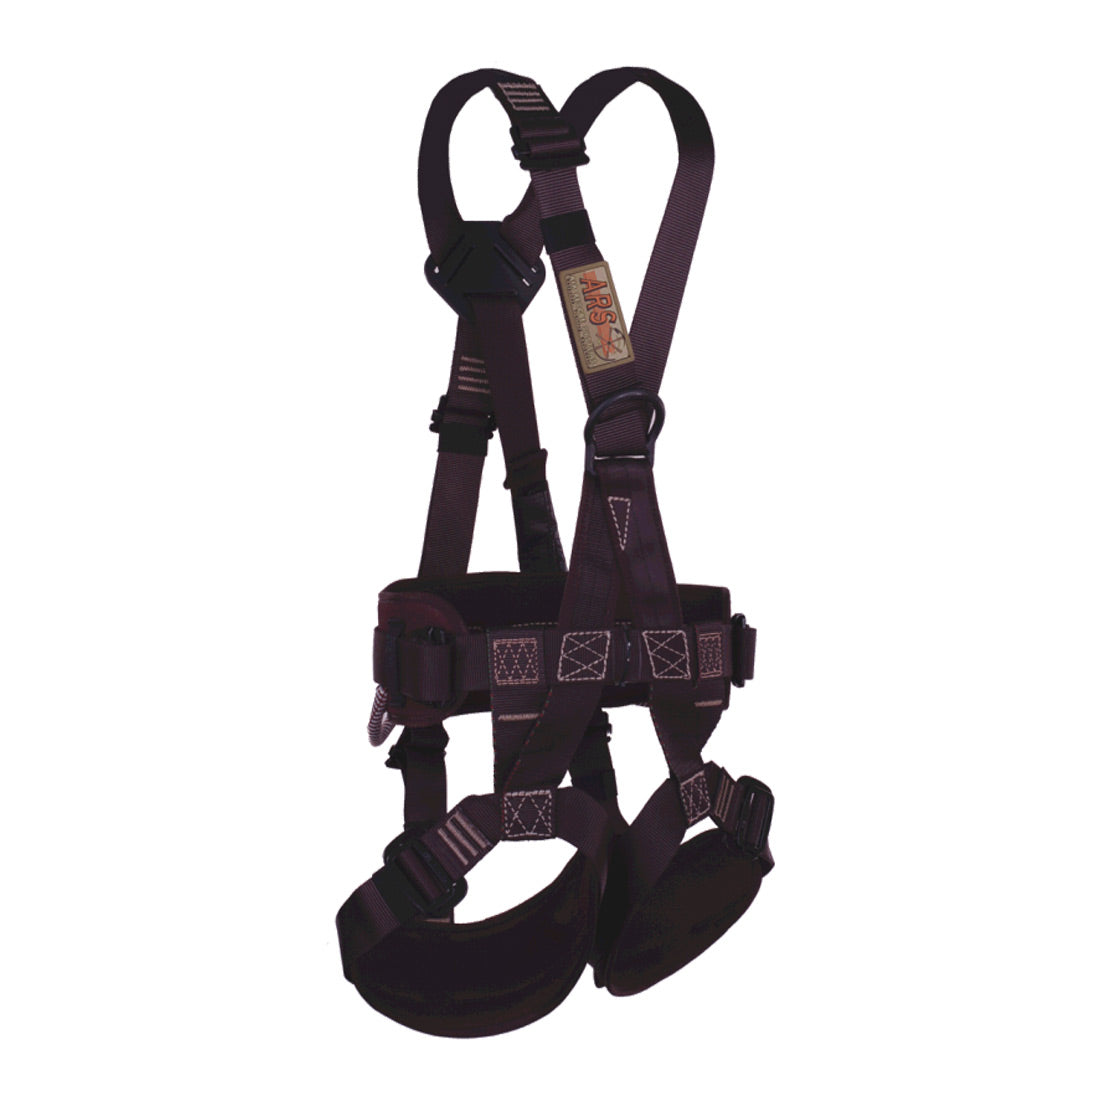 Rich snippet previewHide snippet Yates 388 Heli-Ops Harness